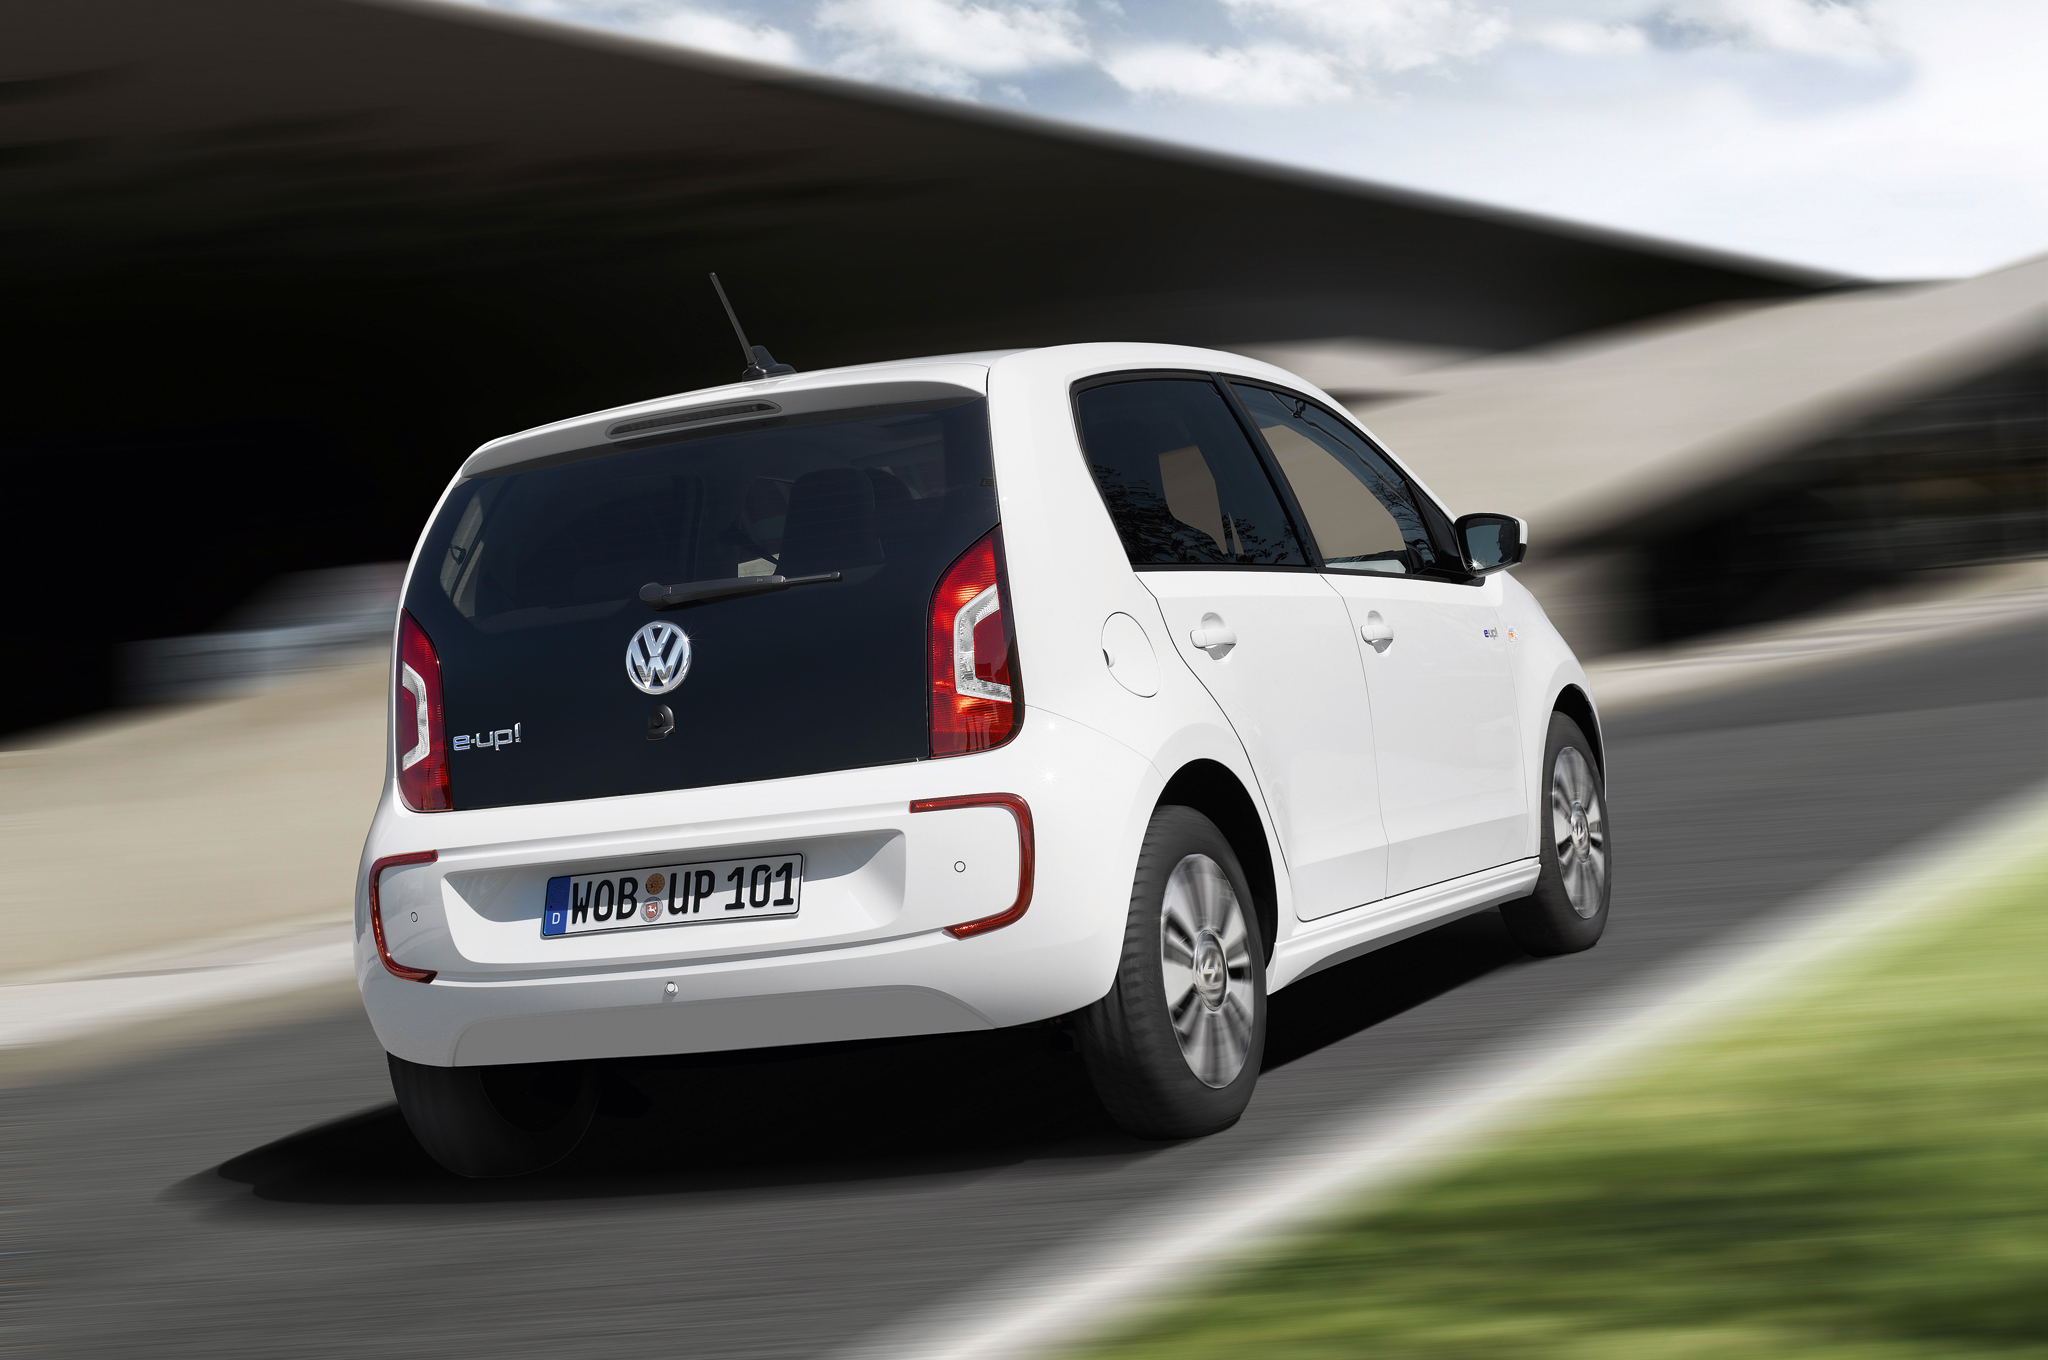 2014 Volkswagen e-Up Rear Side View